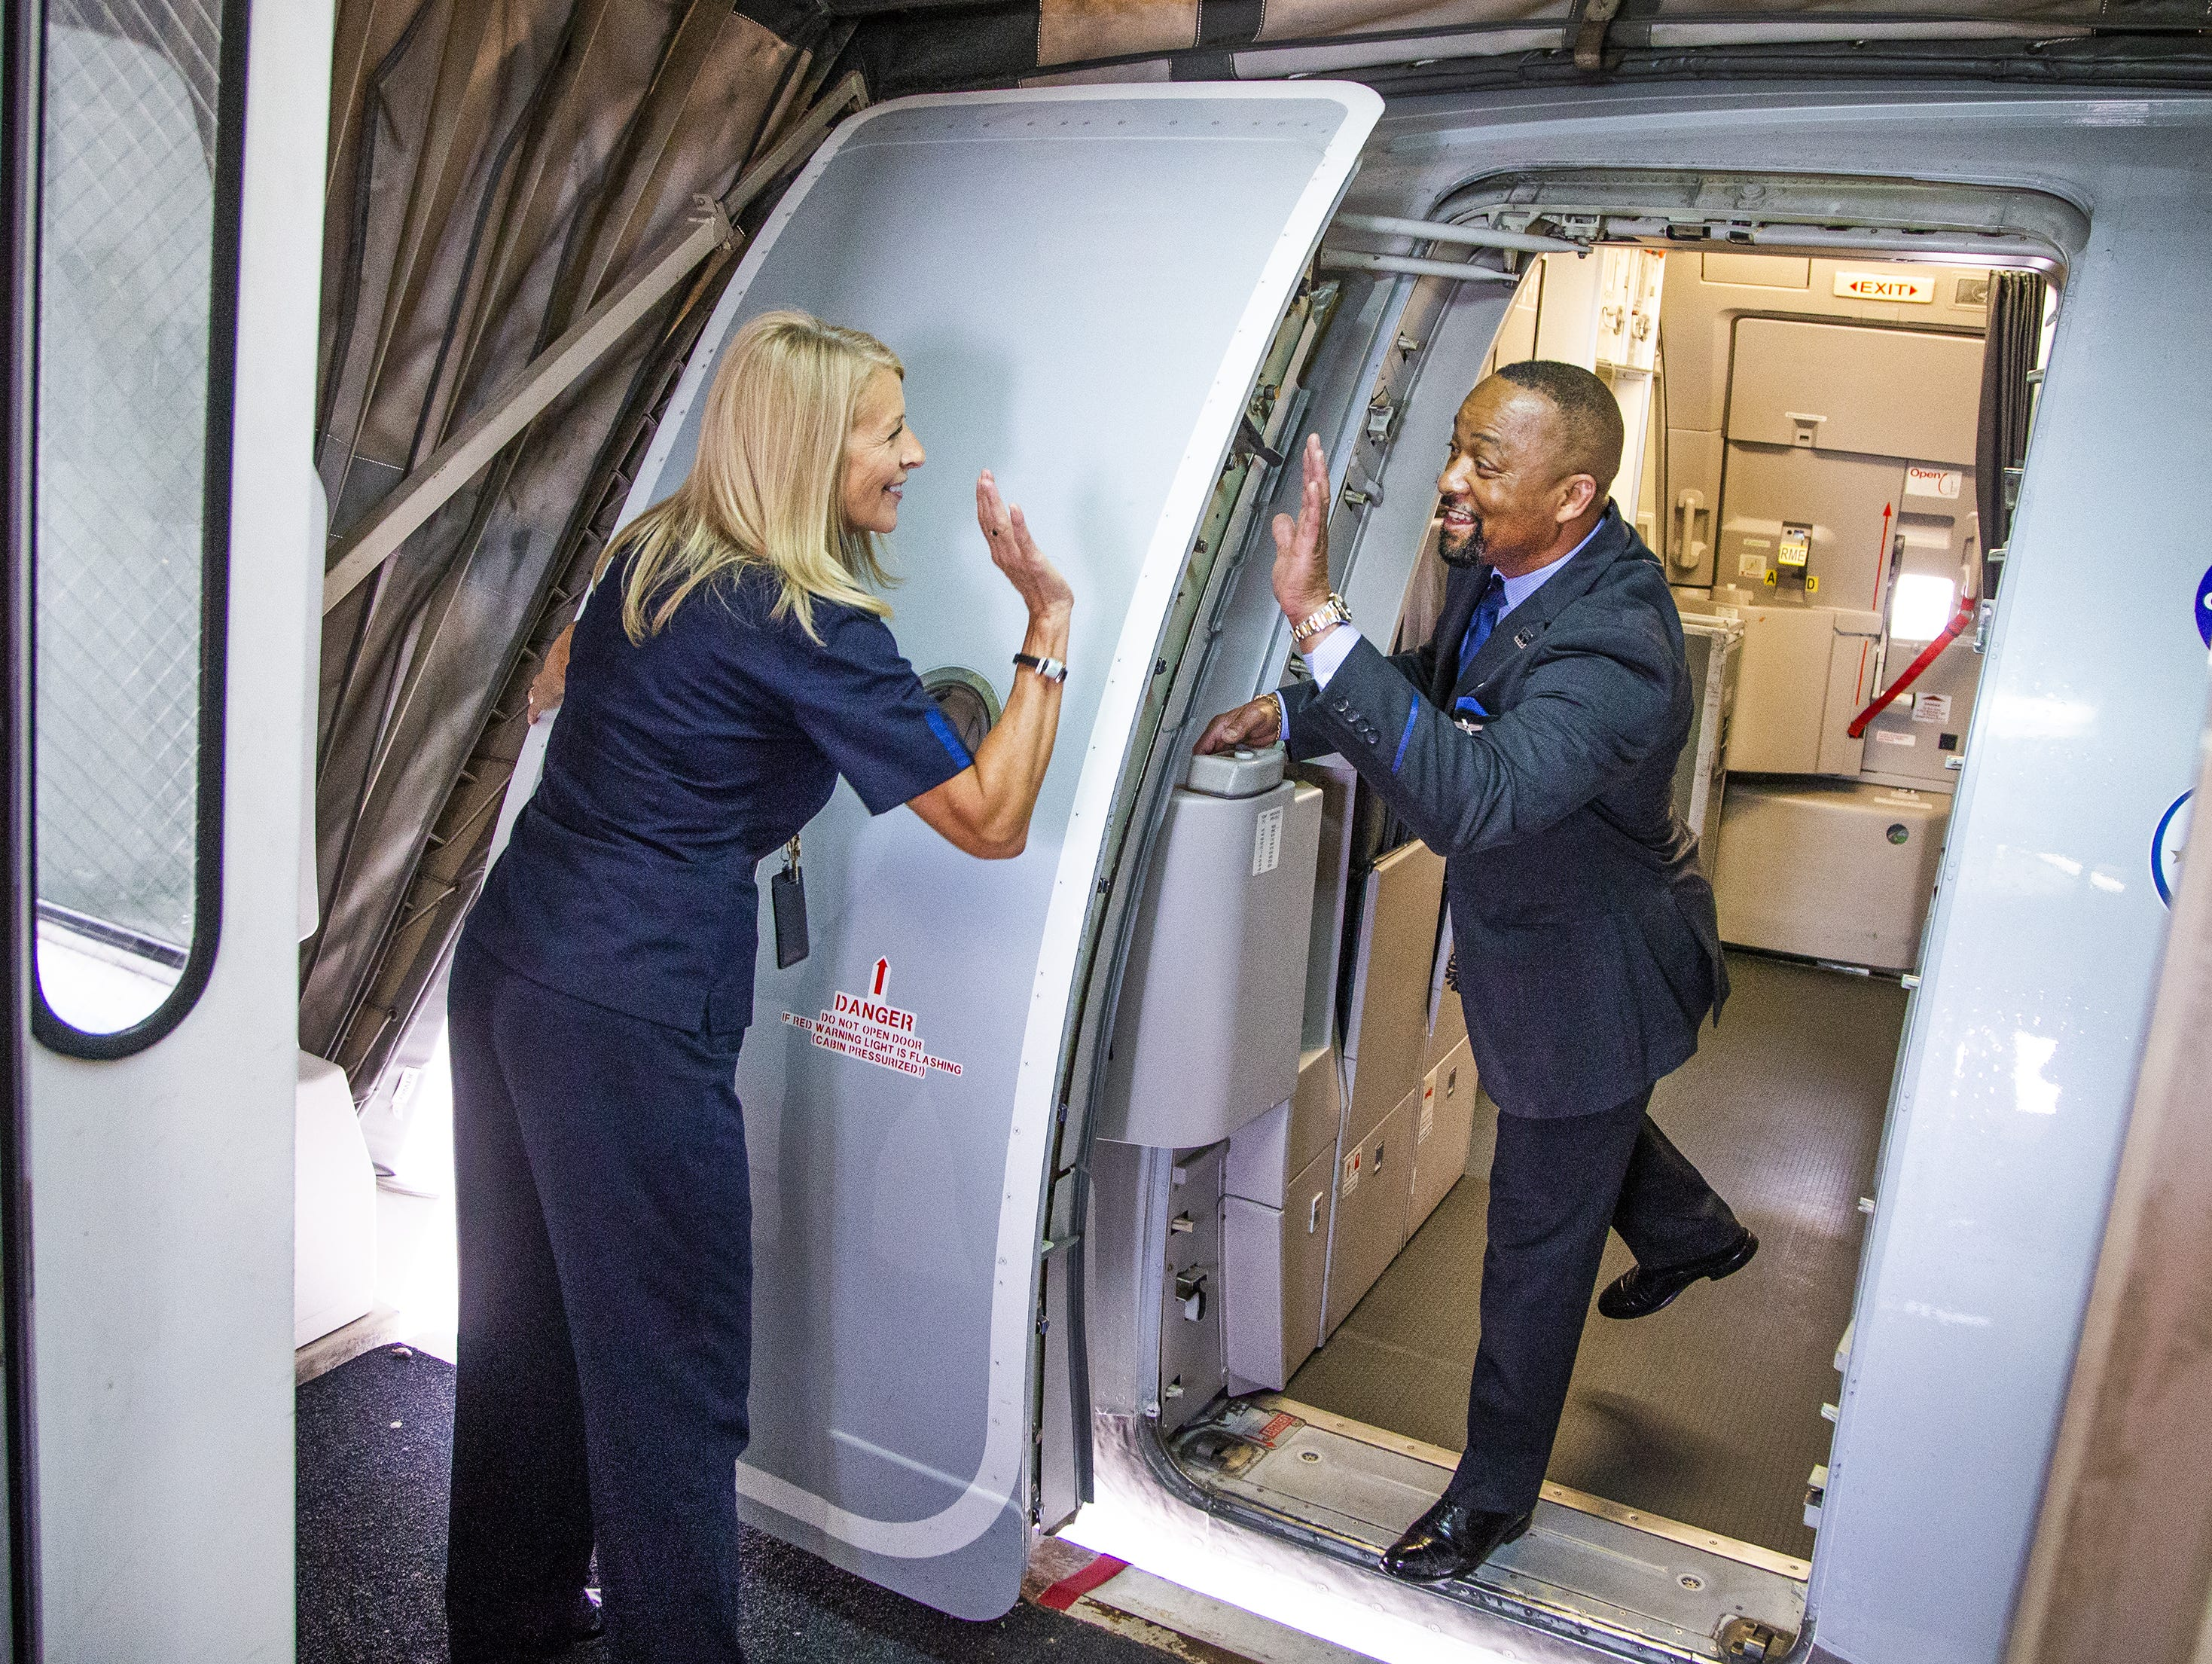 American Airlines gate agent Michel Wall, left, high-fives lead flight attendant Walter Davis, III, before Davis closes the door on an Airbus A-319 at Sky Harbor International Airport in Phoenix, Friday, May 10, 2019.  The flight was unloaded, serviced, cleaned, reloaded and reboarded for a flight to Austin within 30 minutes.